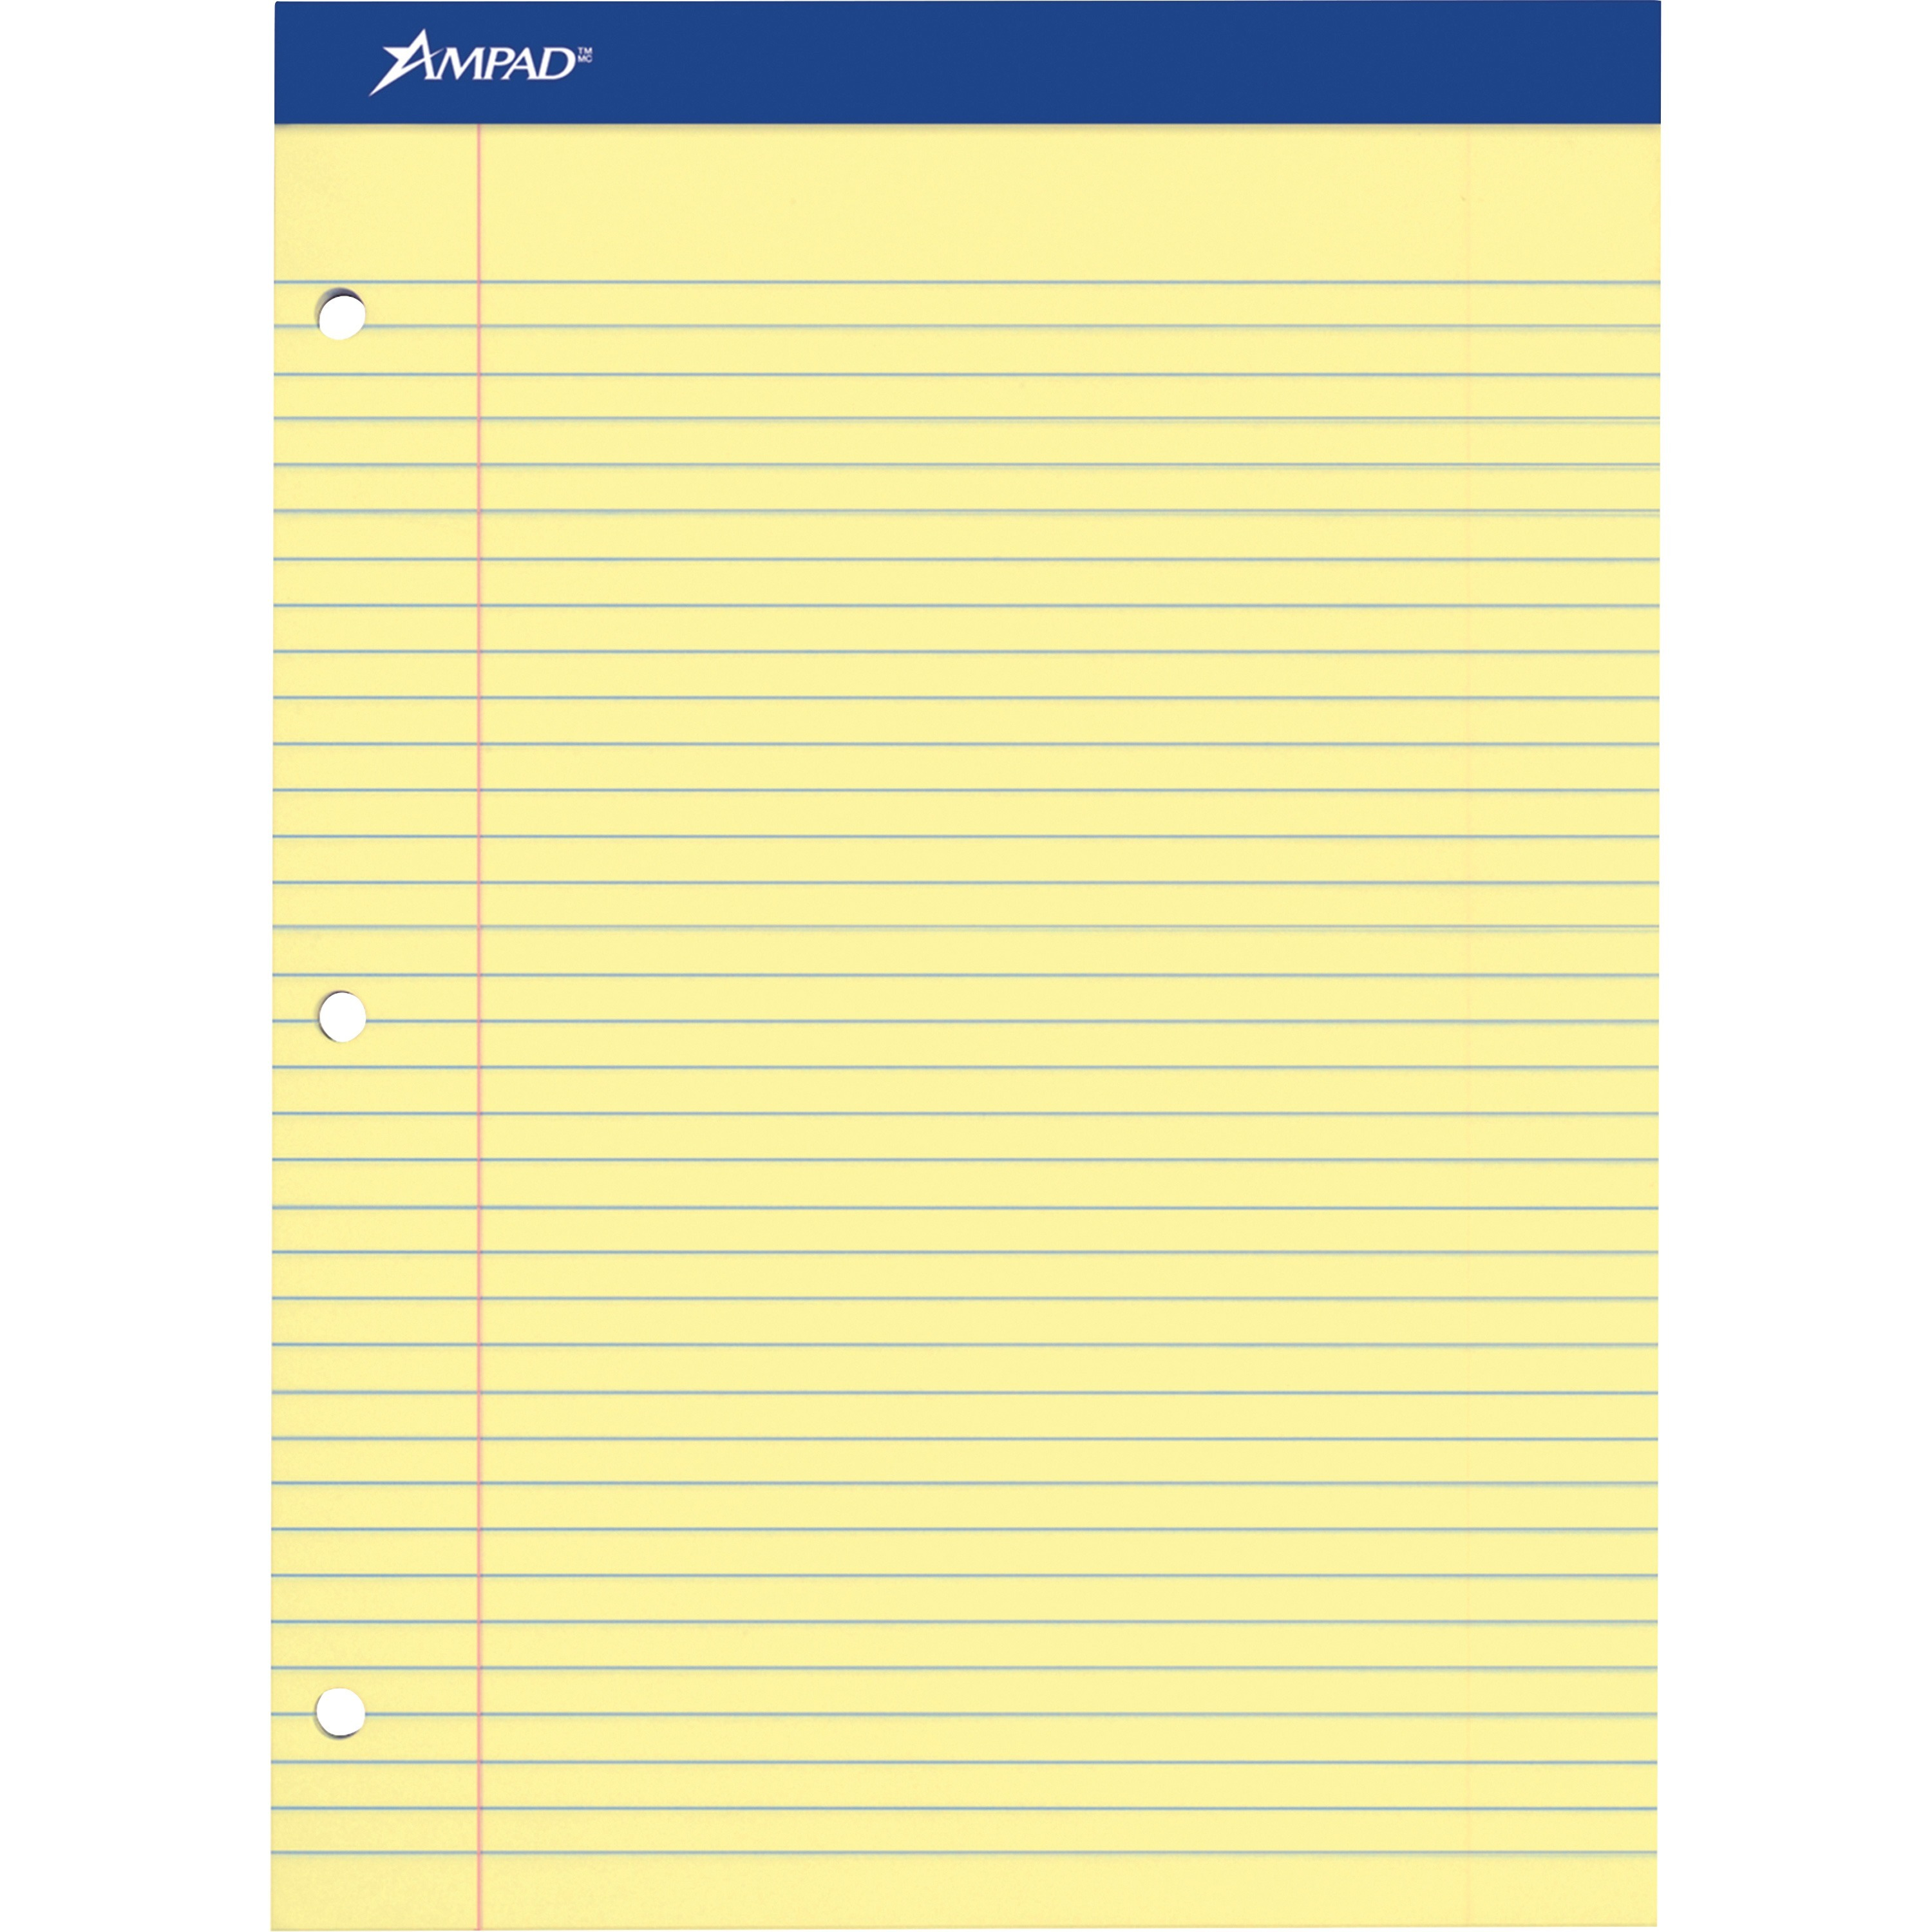 Ampad, TOP20243, Perforated 3 Hole Punched Ruled Double Sheet Pads - Letter, 100 / Pad